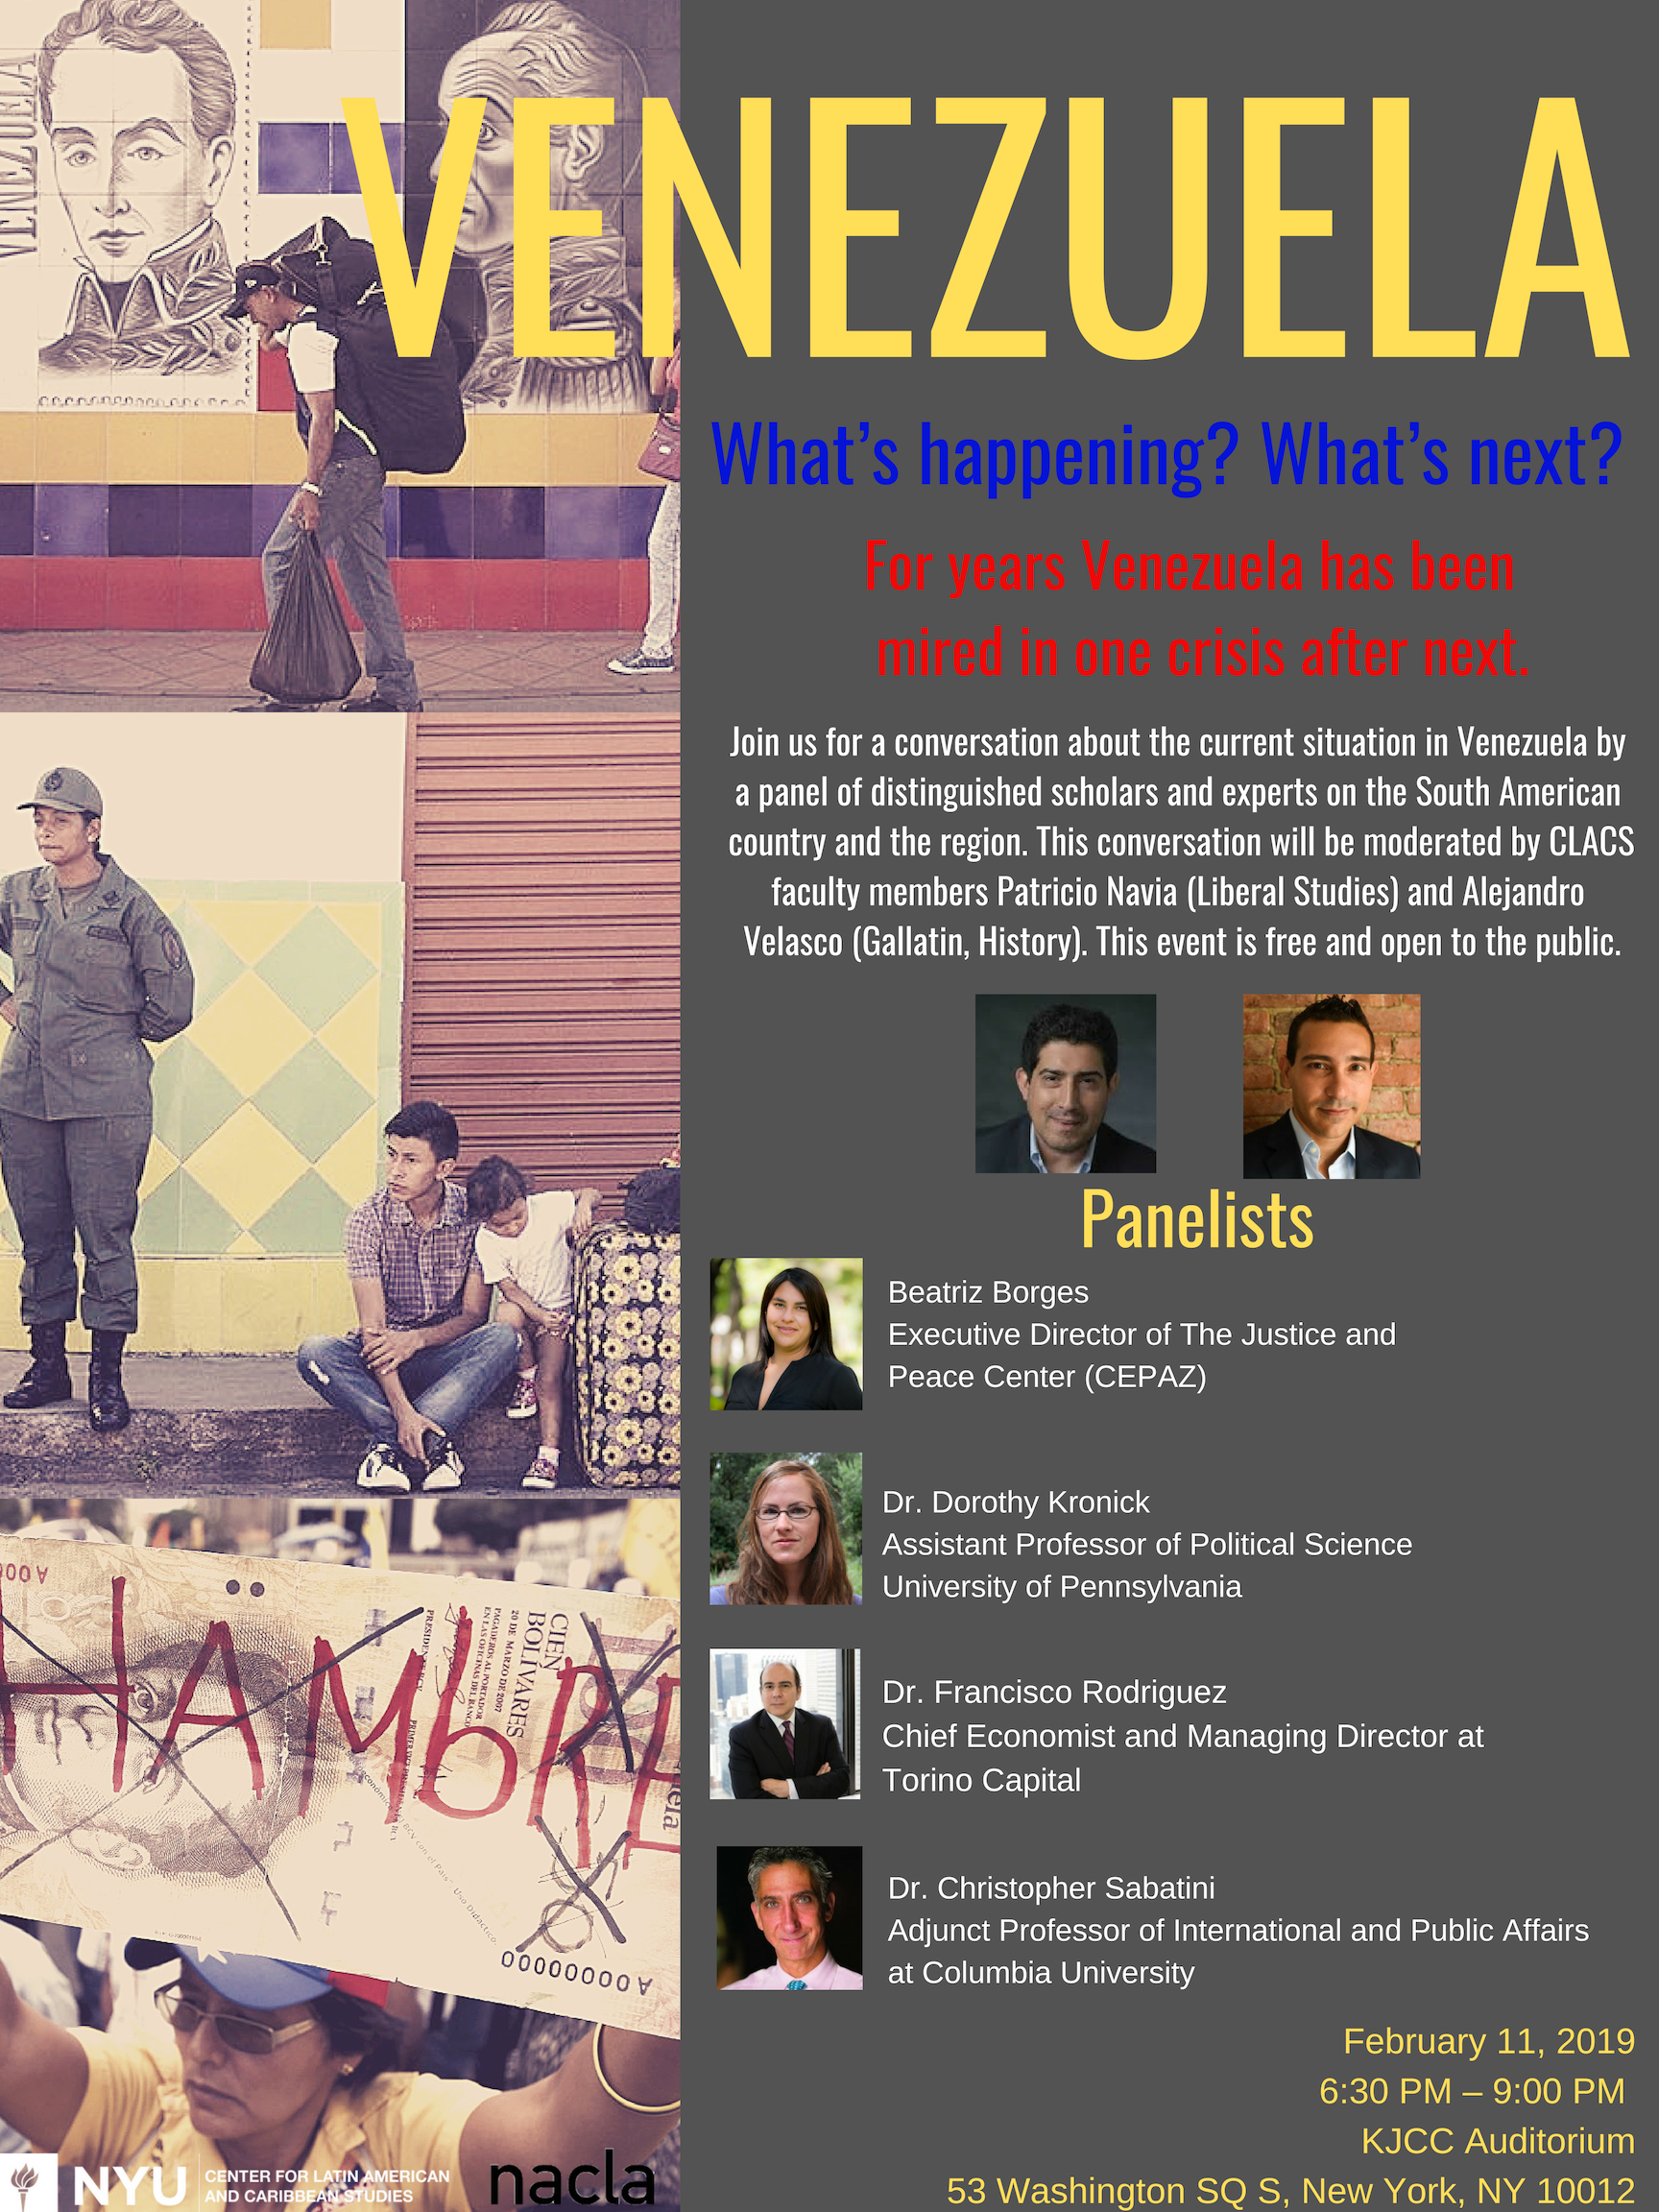 Poster of images from Venezuelan crisis